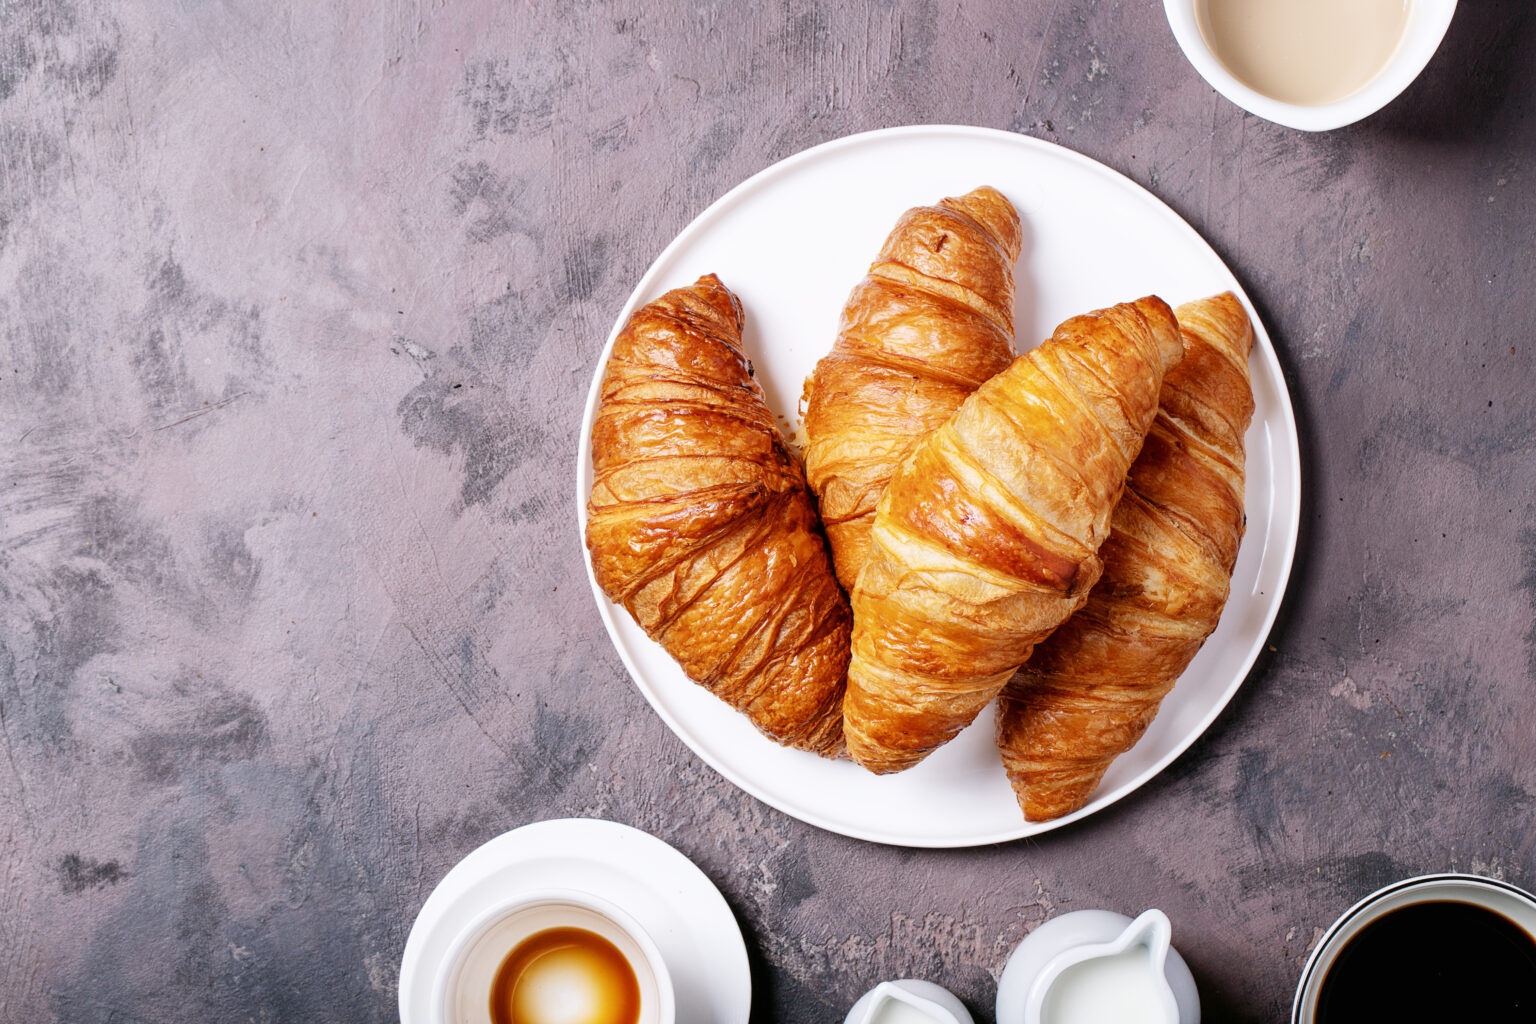 Fresh coffee in white ceramic cups served with croissants over brown texture brown background. Top view, flat lay